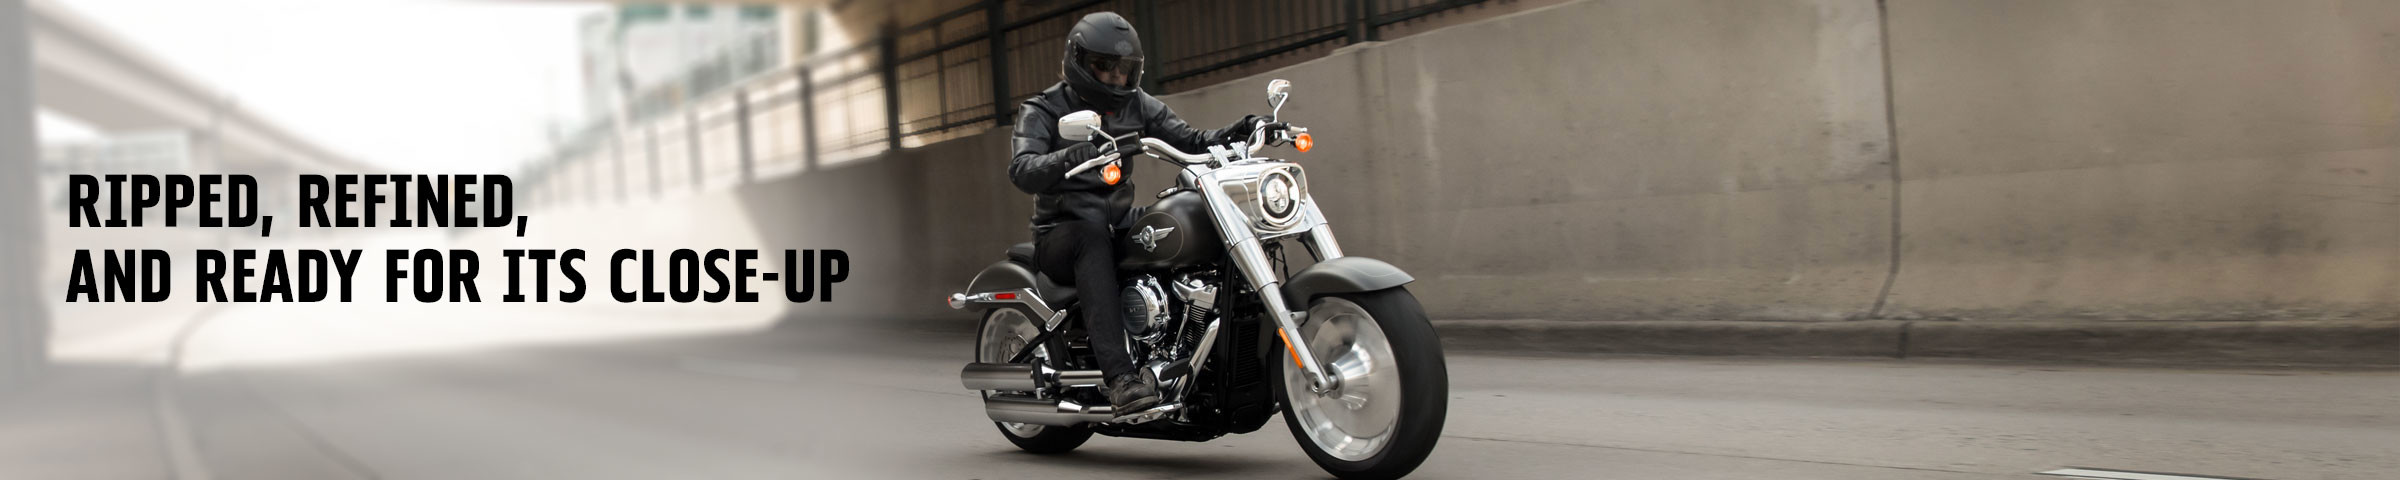 2019 H-D<sup>®</sup> Motorcycles